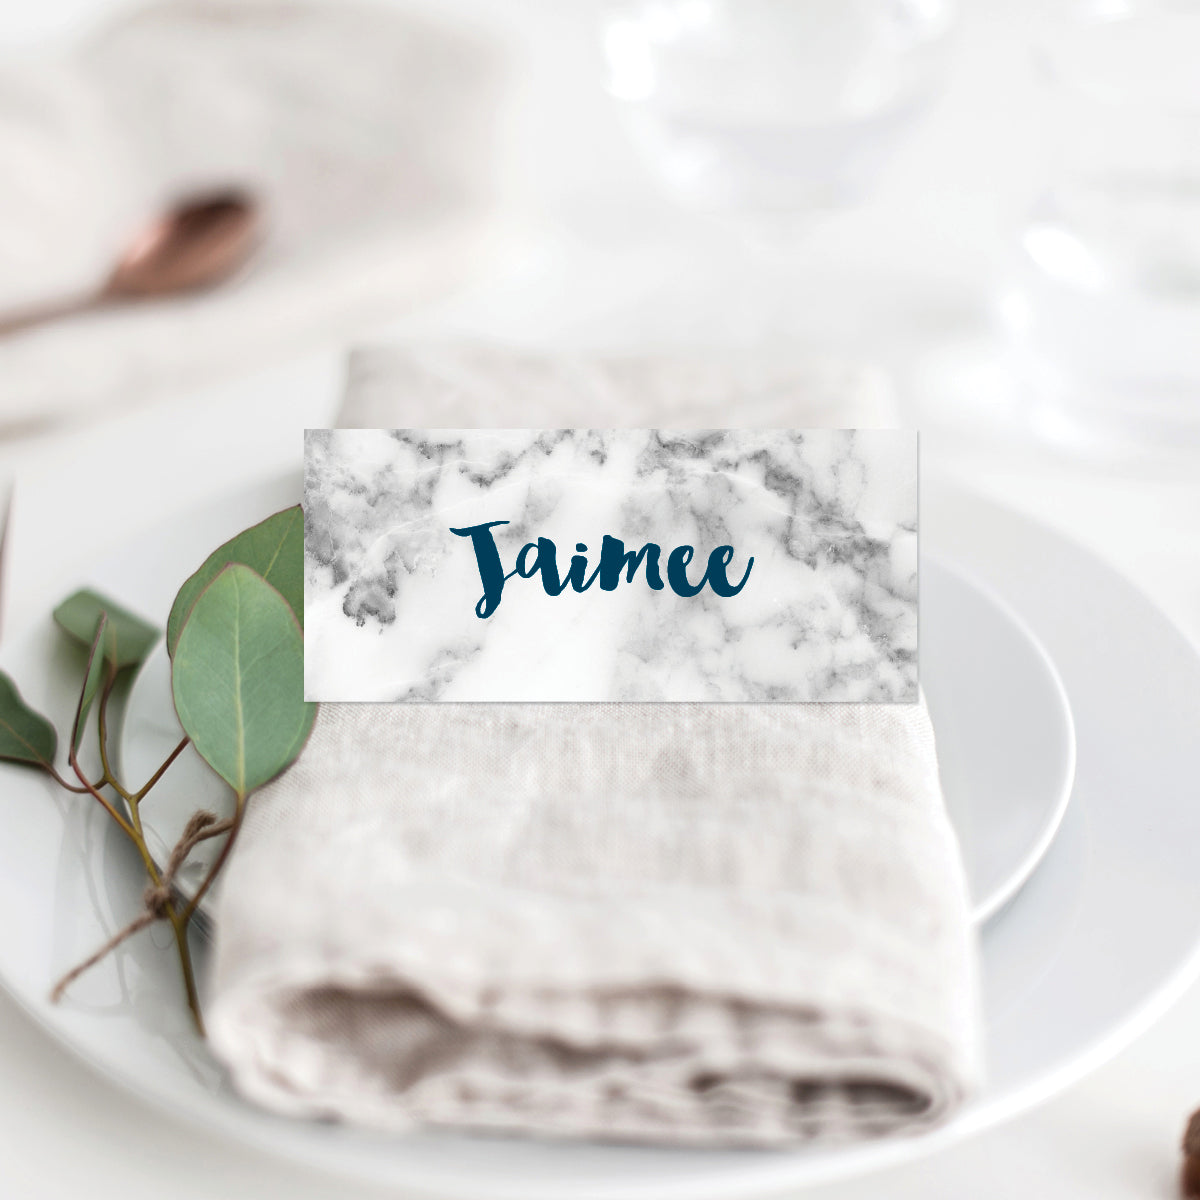 Modern Marble Placecard